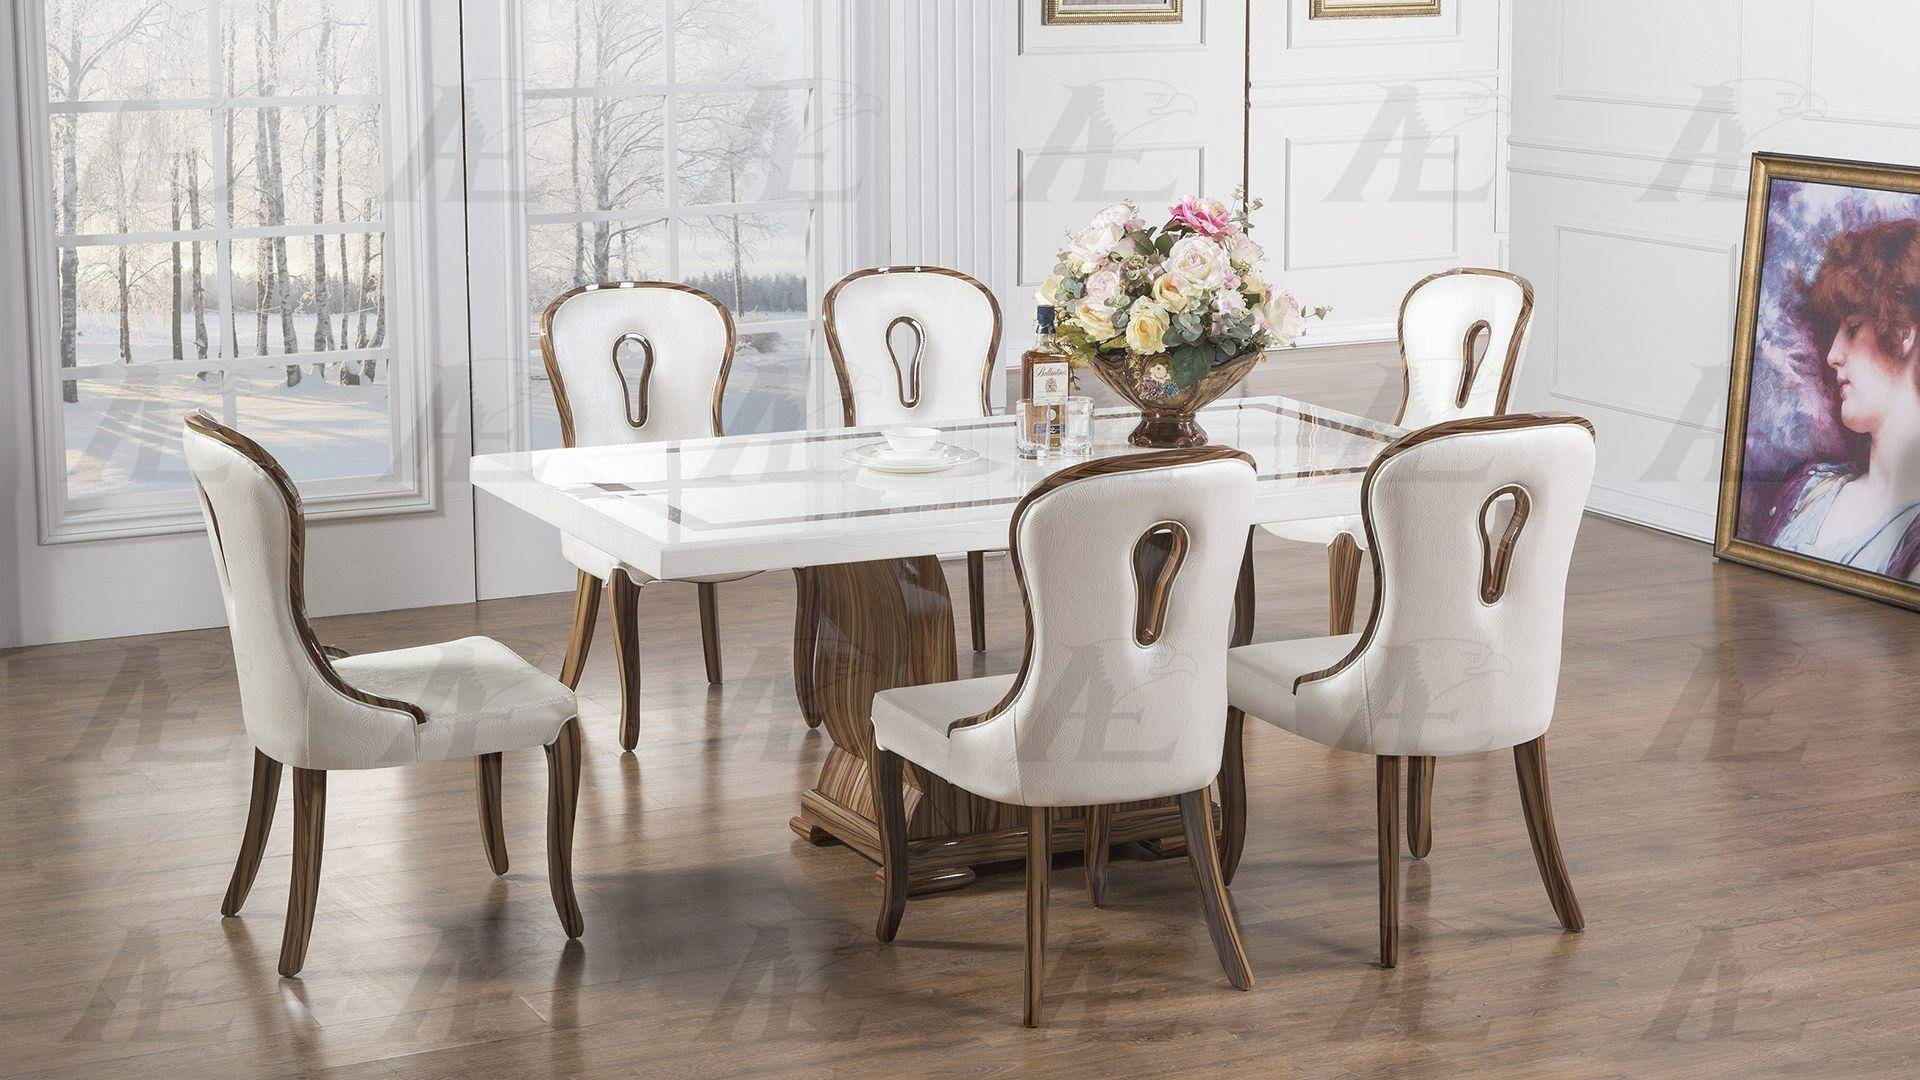 American Eagle Furniture Dt H102 Luxury White Marble Top Dining Table White Chairs 5 Pcs Dt H102 Ck H2117 Set 5pcs